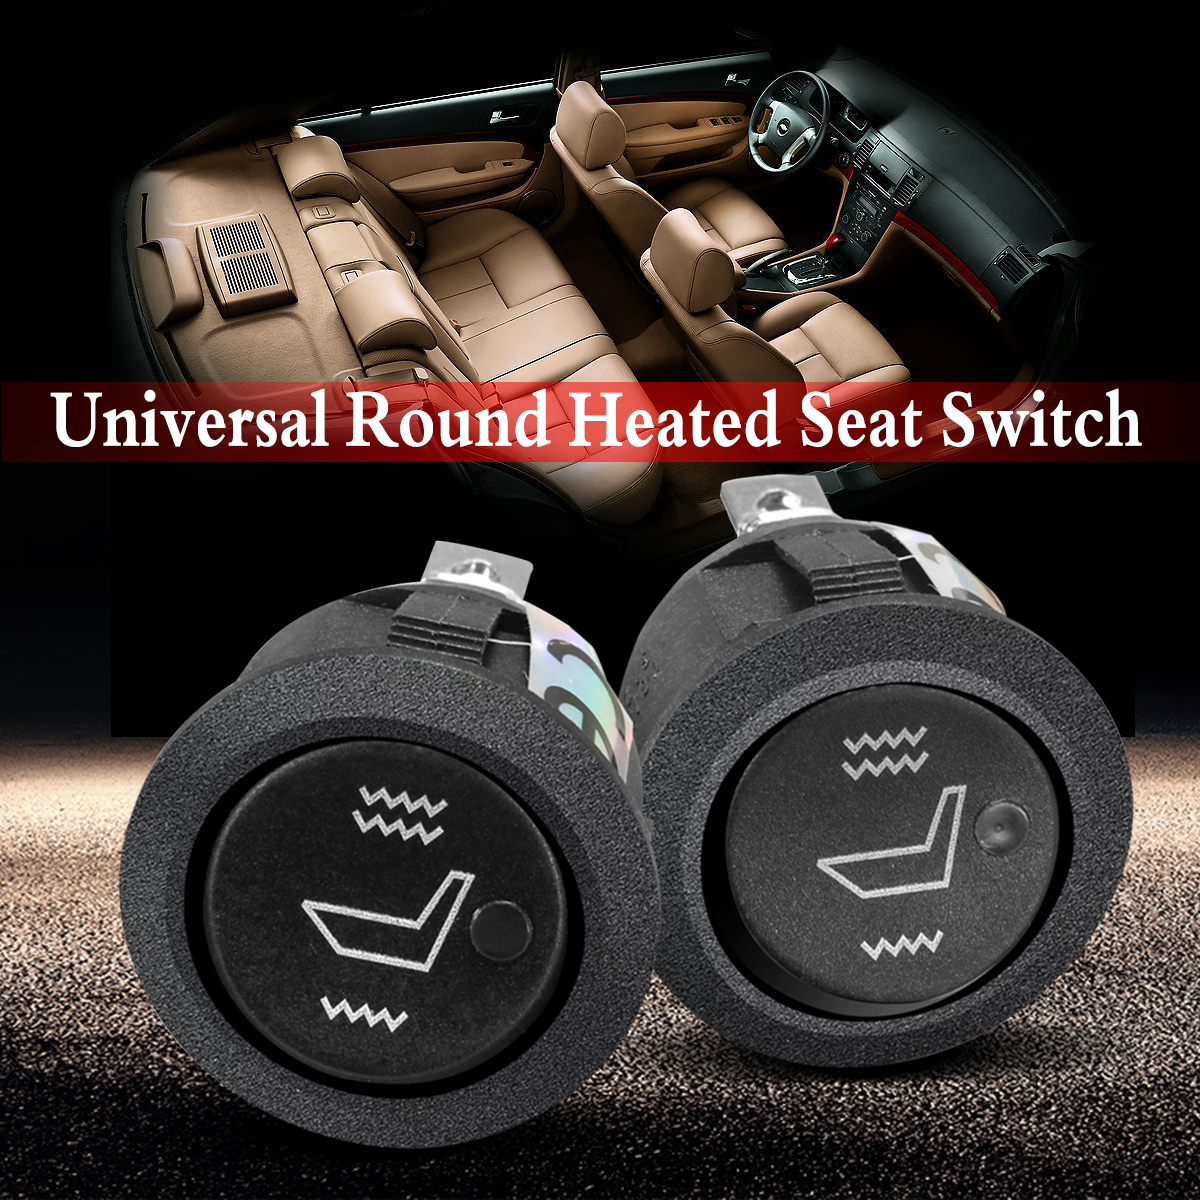 Universal car seat heater,rectangle rocker switch,2 seats,heated seat,car switch